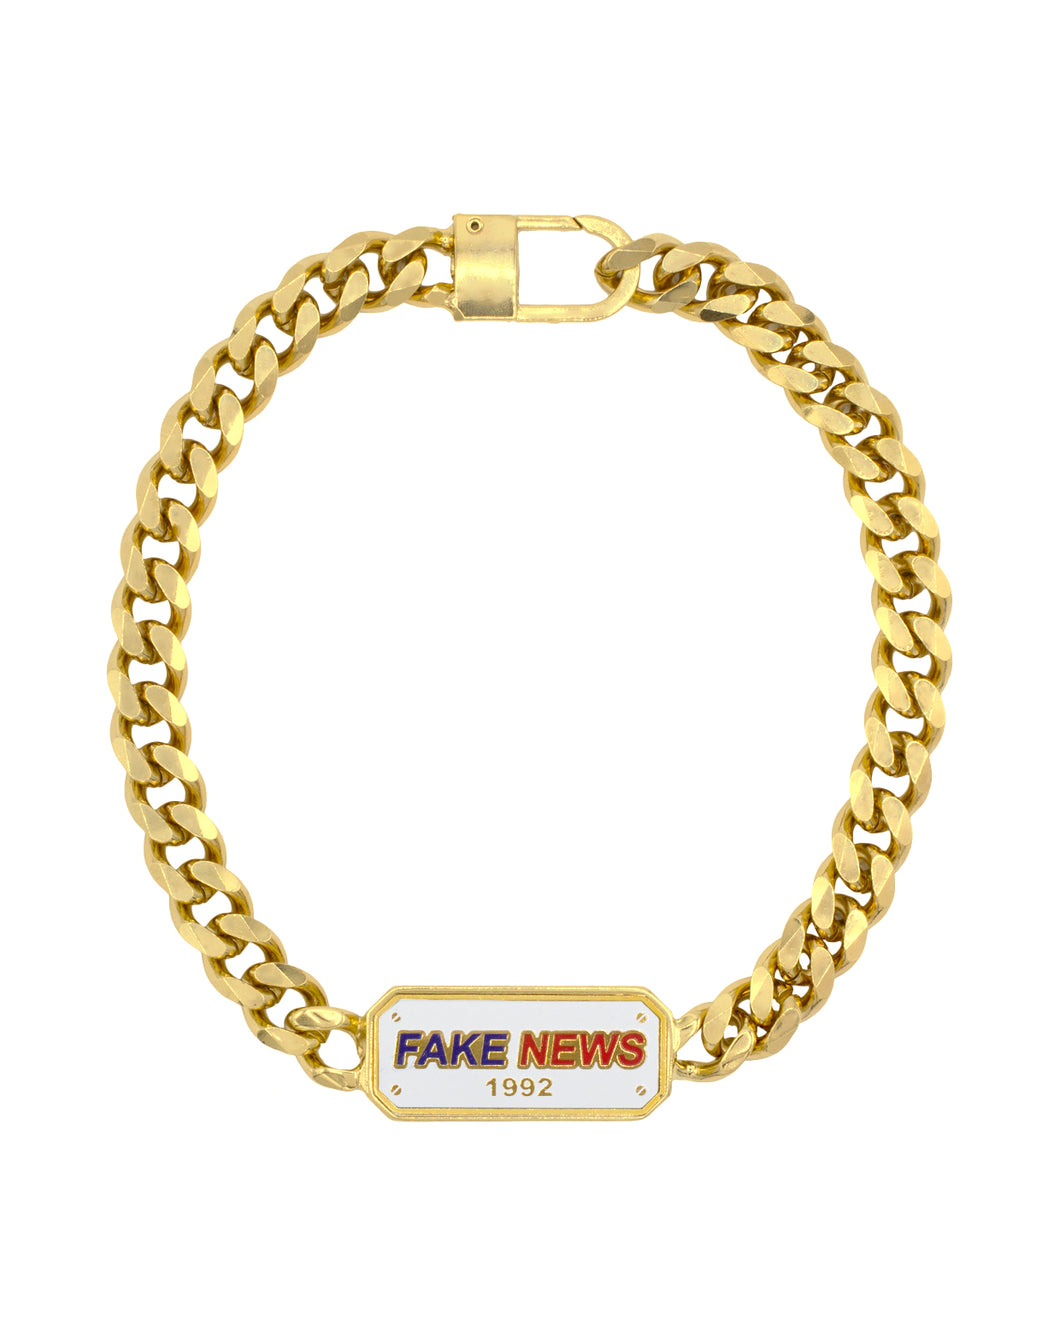 Fake News Brass Chain available in Gold plating & Silver Plating